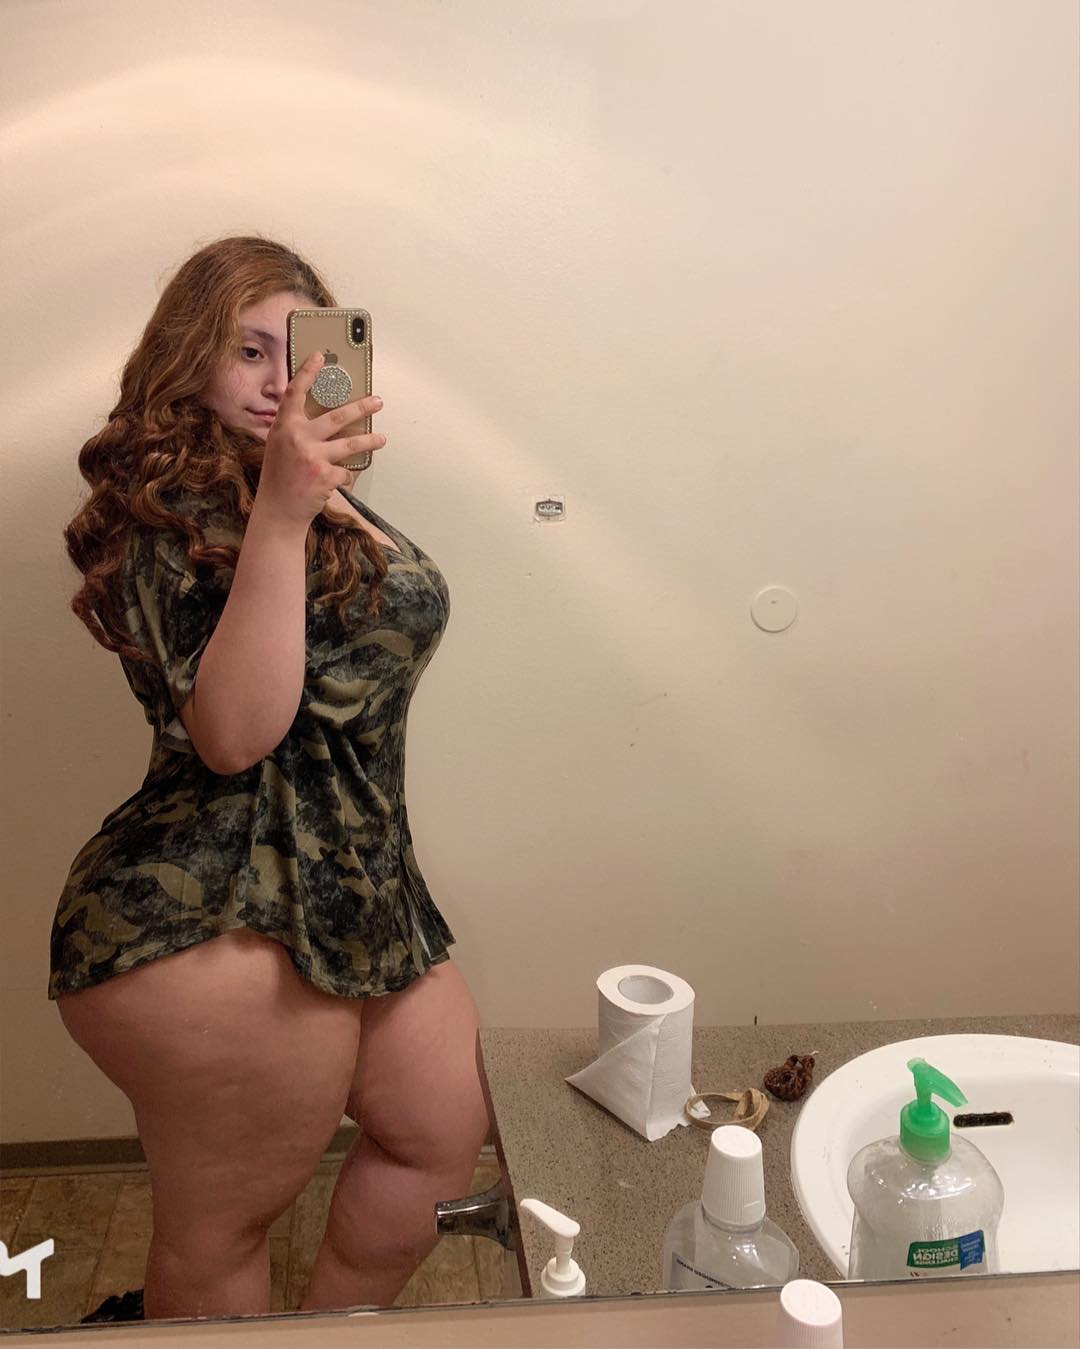 Anali Sanchez Nude Onlyfans Leaked!0099